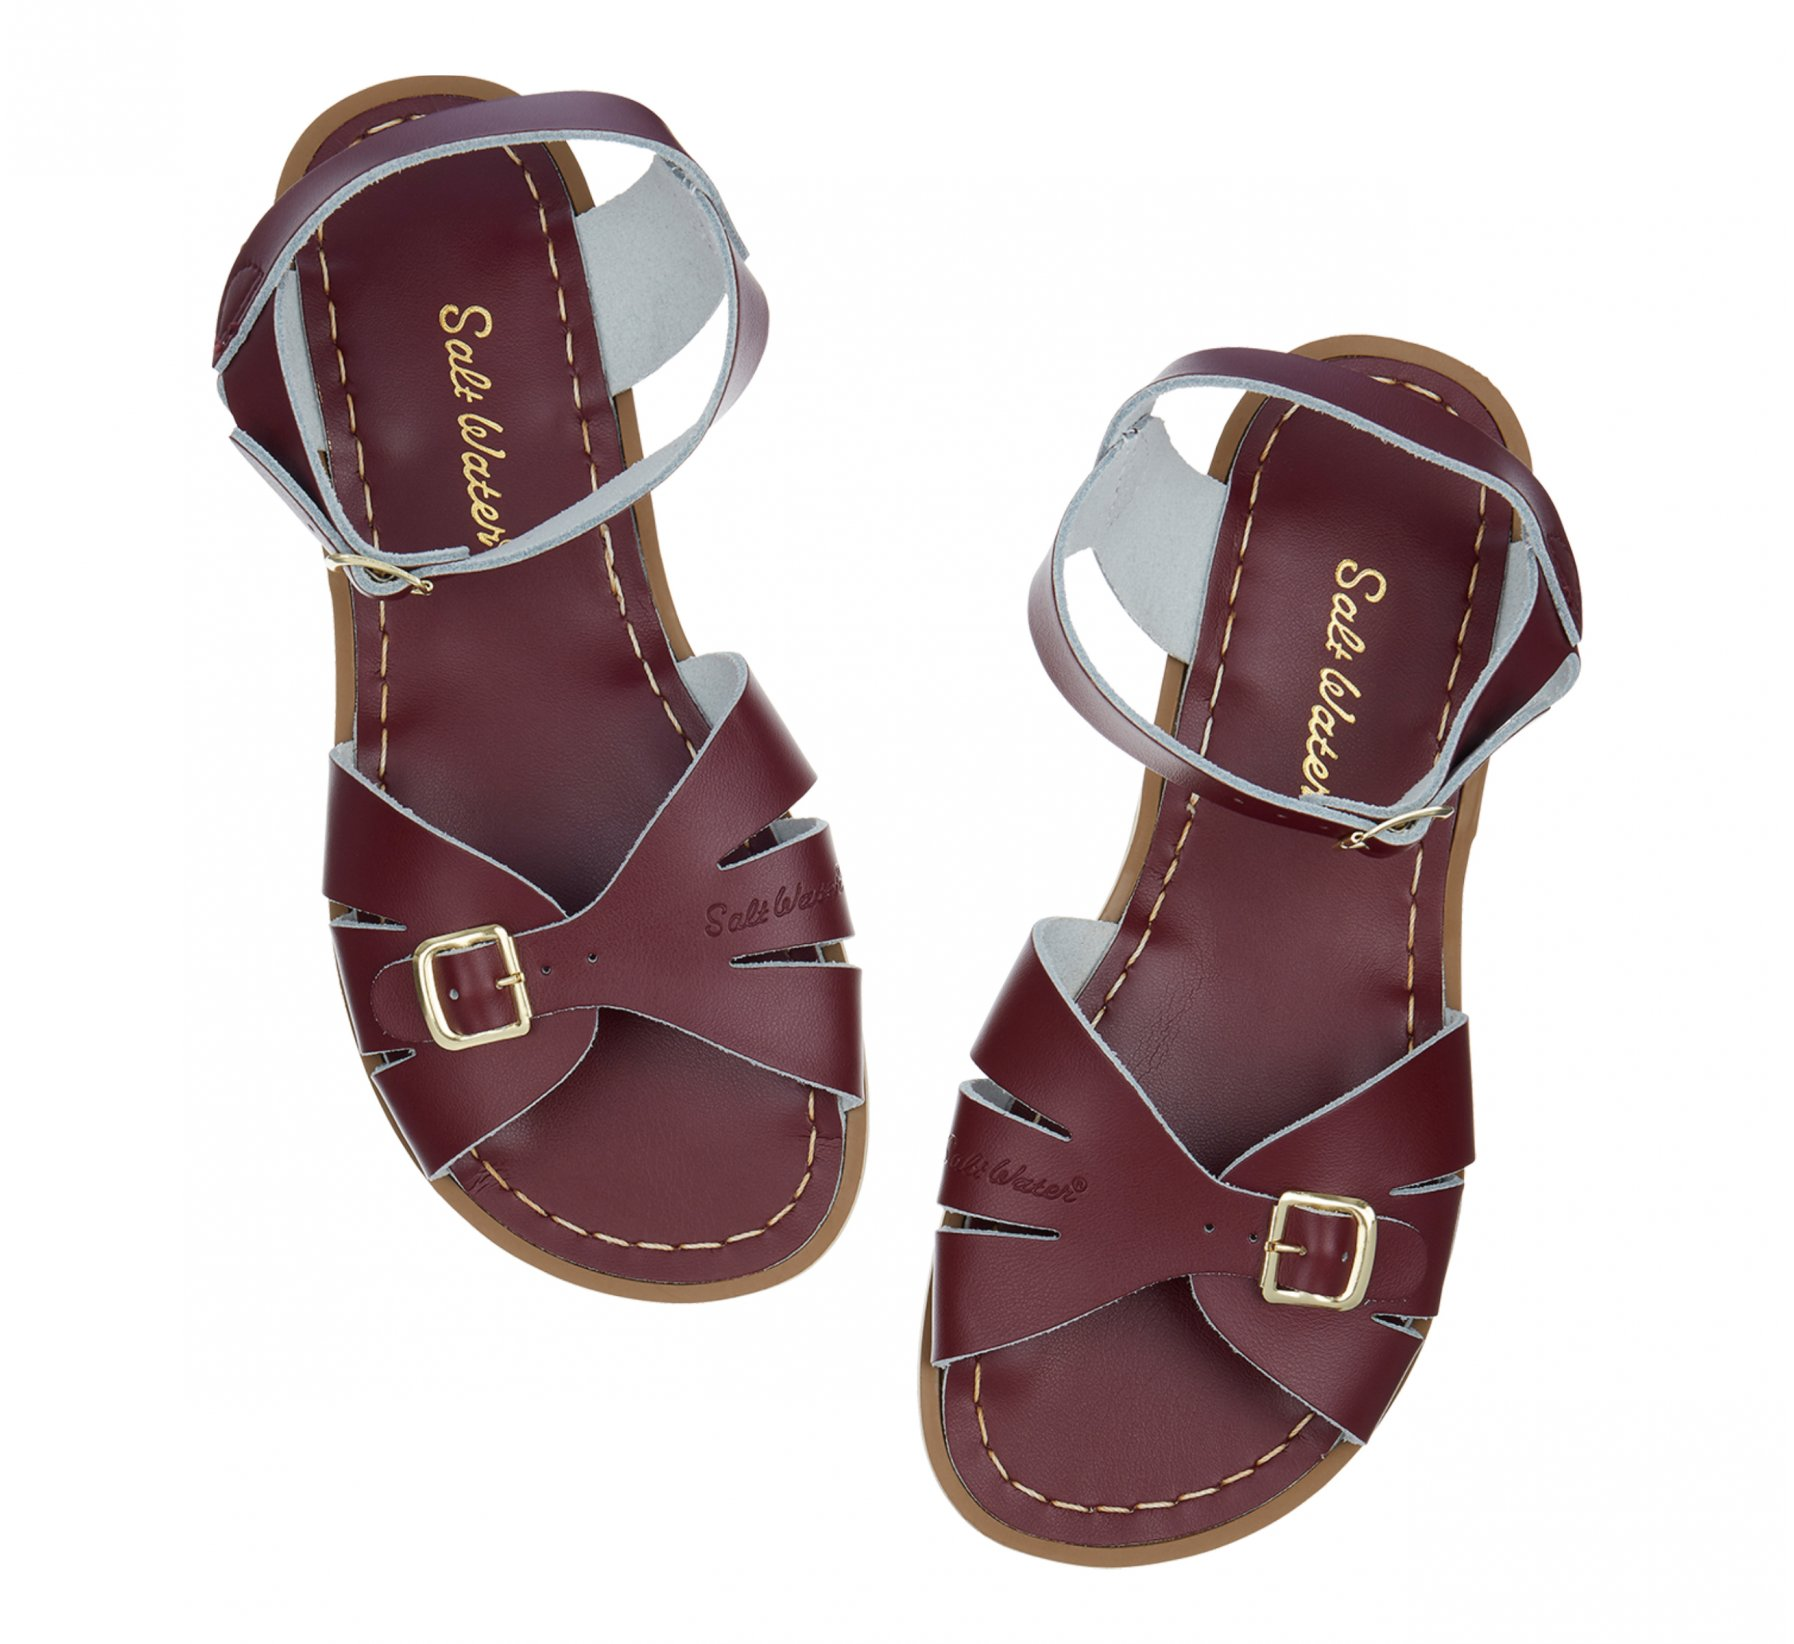 Classic Claret - Salt Water Sandals